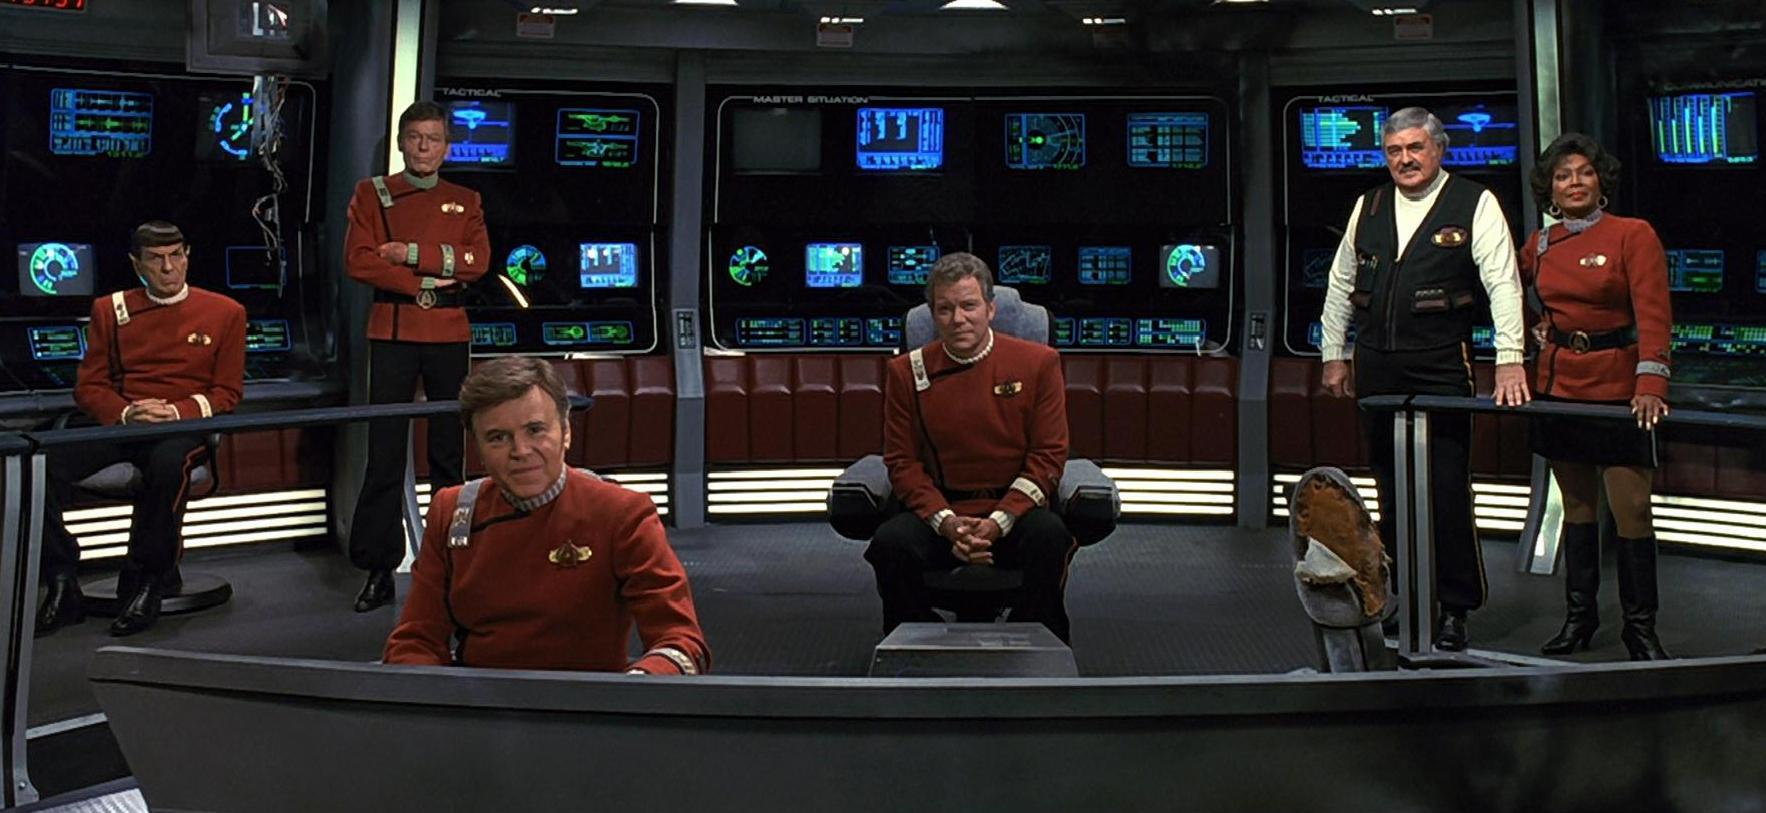 The Enterprise crew together again for one last outing - Mr Spock (Leonard Nimoy), Dr McCoy (DeForest Kelley), Chekov (Walter Koeenig), Captain Kirk (William Shatner), Mr Scott (James Doohan) and Uhura (Nichelle Nichols) in Star Trek VI: The Undiscovered Country (1991)